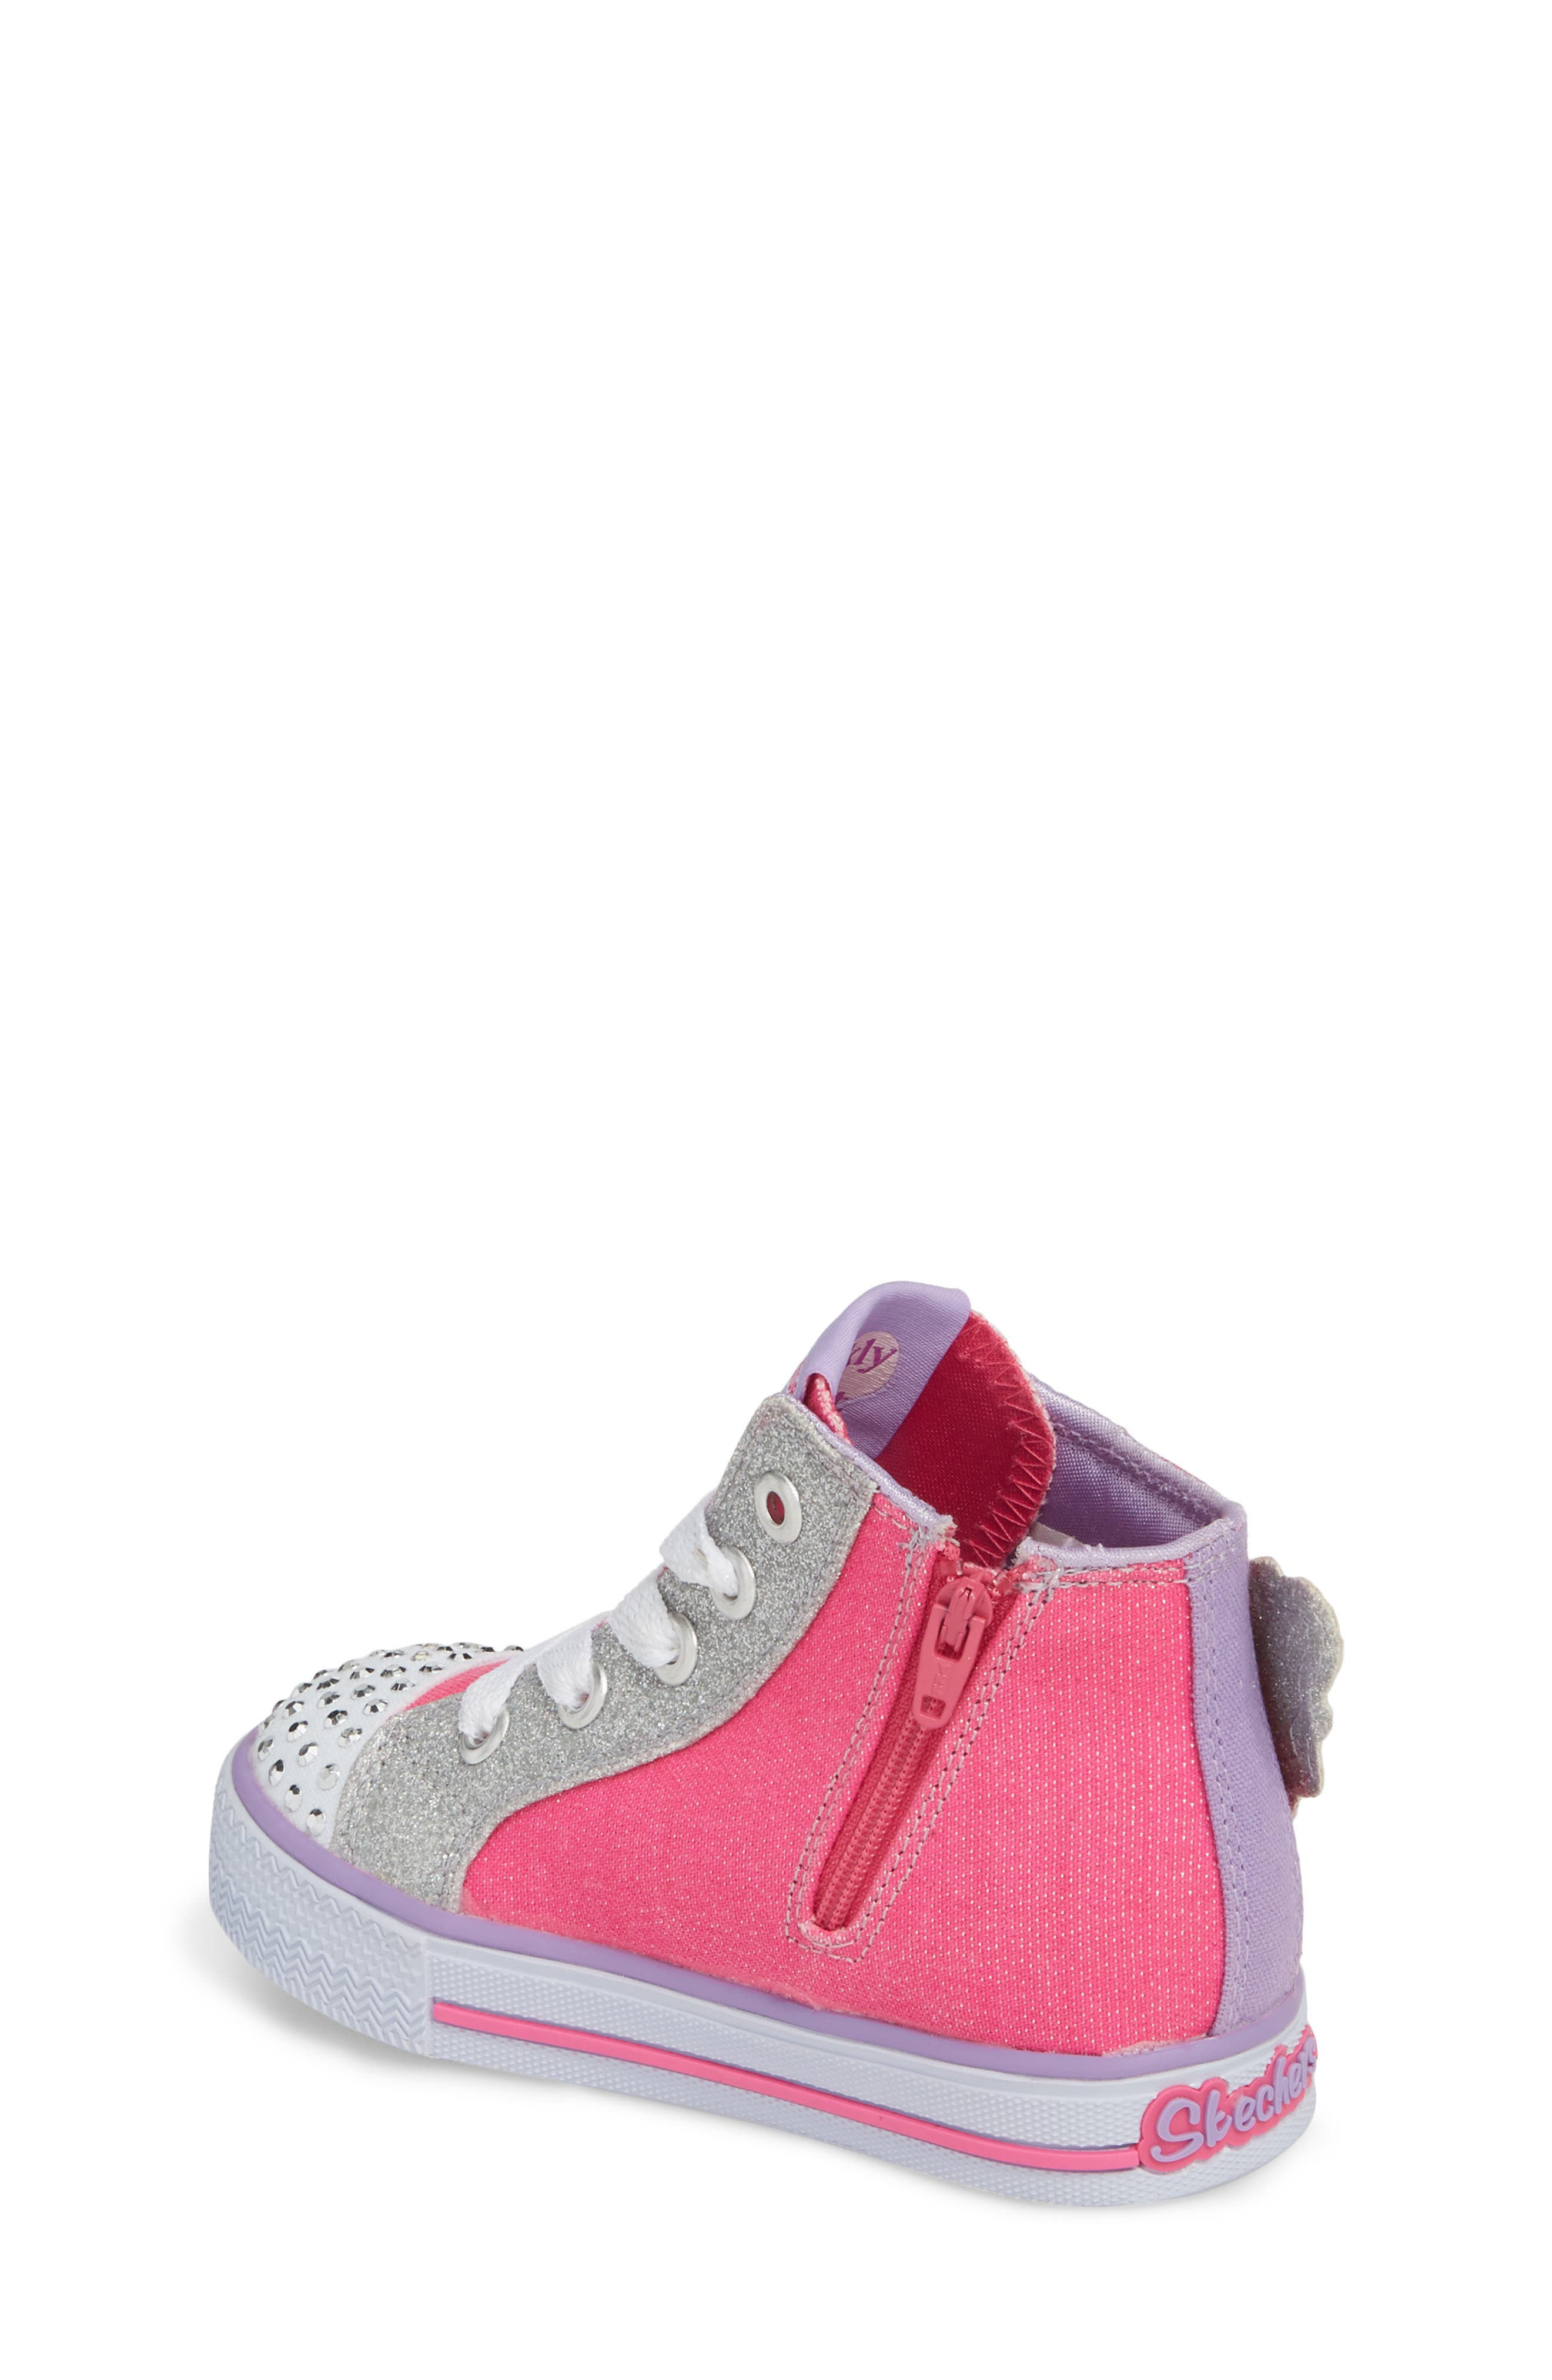 Twinkle Toes Shuffles Fooling Flutters Light-Up High Top Sneaker,                             Alternate thumbnail 2, color,                             Hot Pink/ Silver